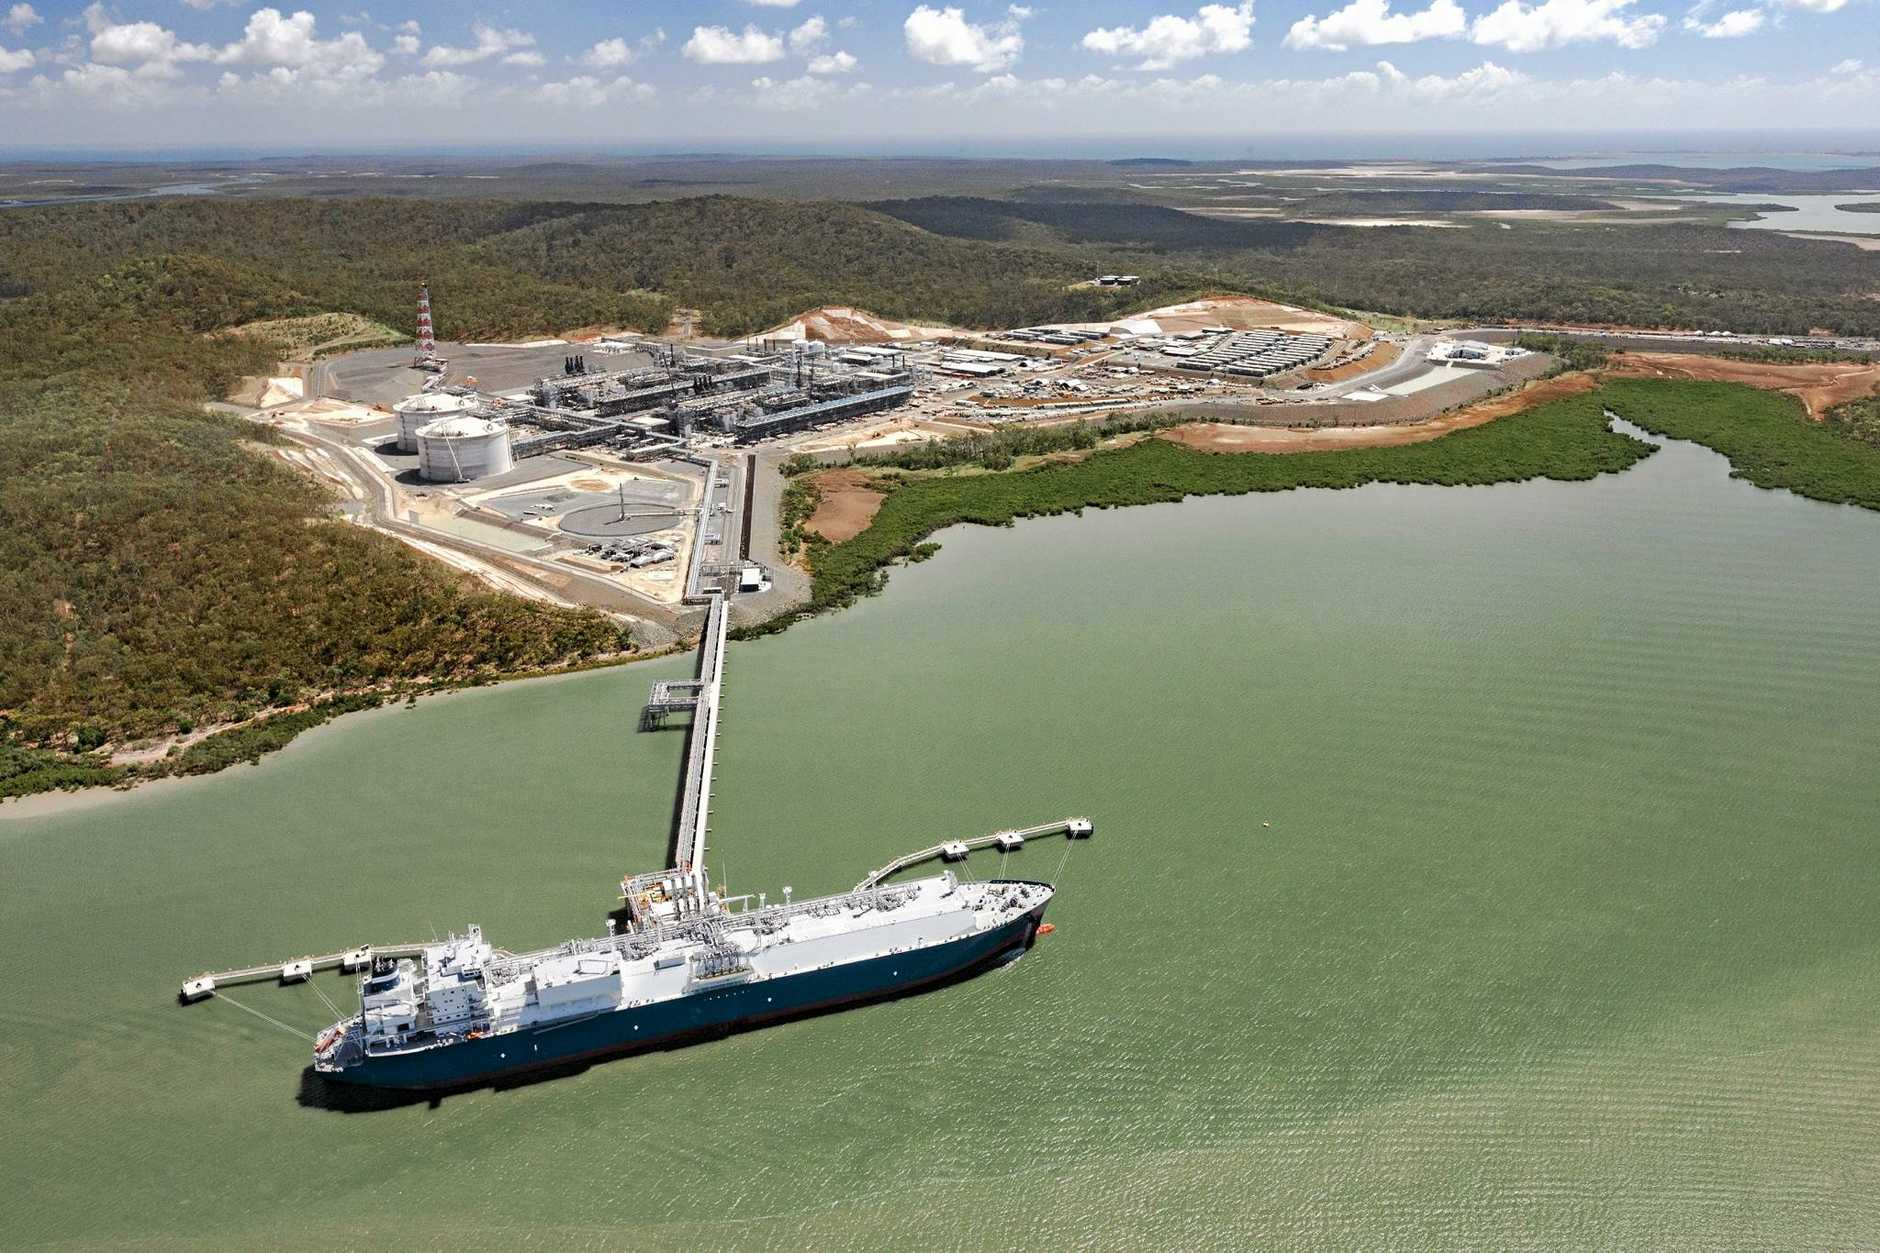 BURNING MONEY: Santos has written-off $1.05 billion from the value of GLNG.